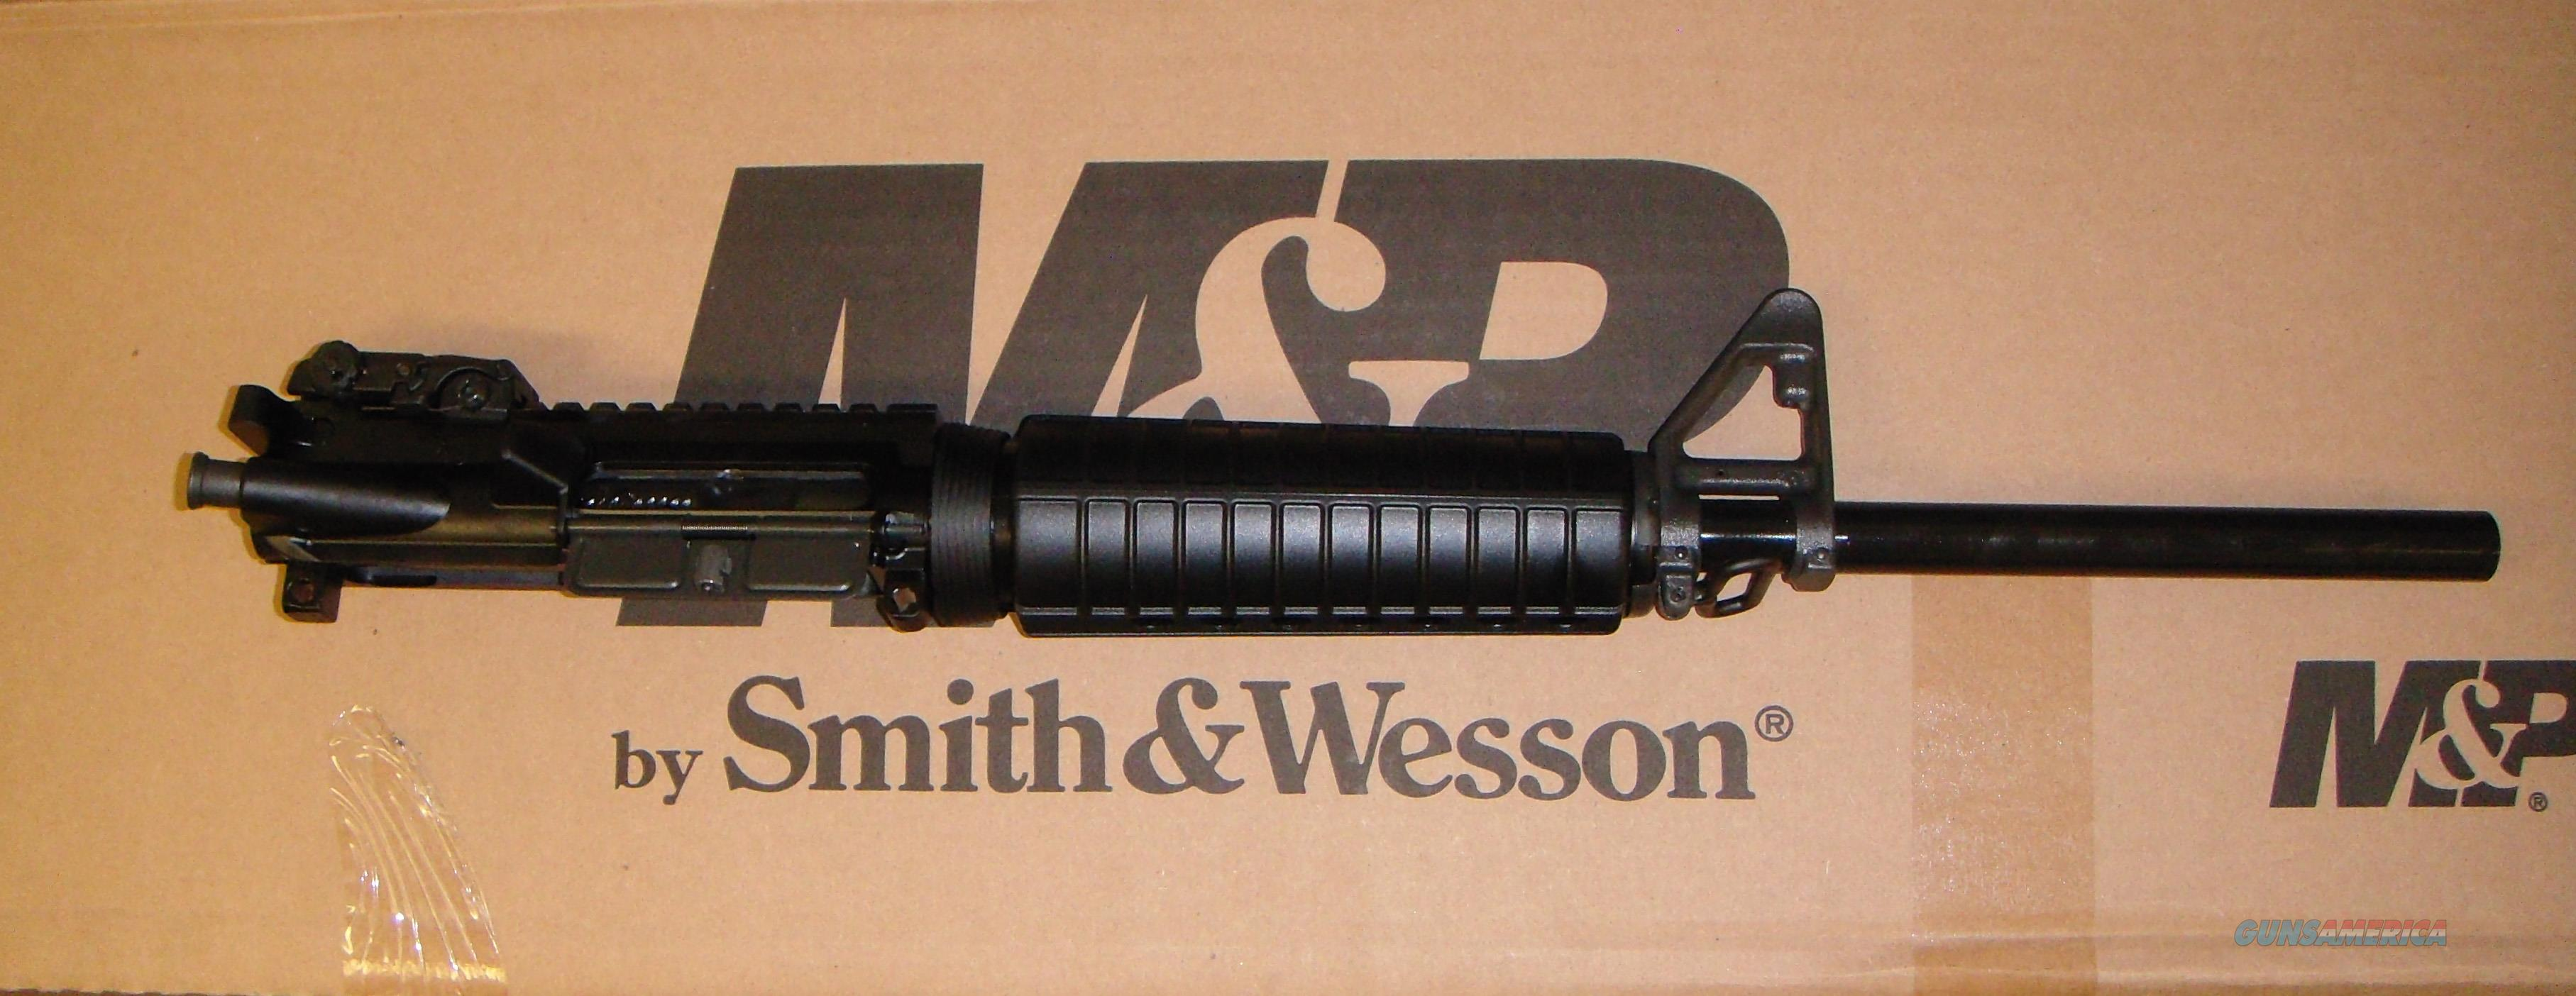 "SMITH&WESSON M&P15 16"" COMPLIANT COMPLETE UPPER RECEIVER AND PINNED STOCK, NO BAYONET LUG OR FLASH HIDER!!! ma mass nj ca  Non-Guns > Gun Parts > M16-AR15 > Upper Only"